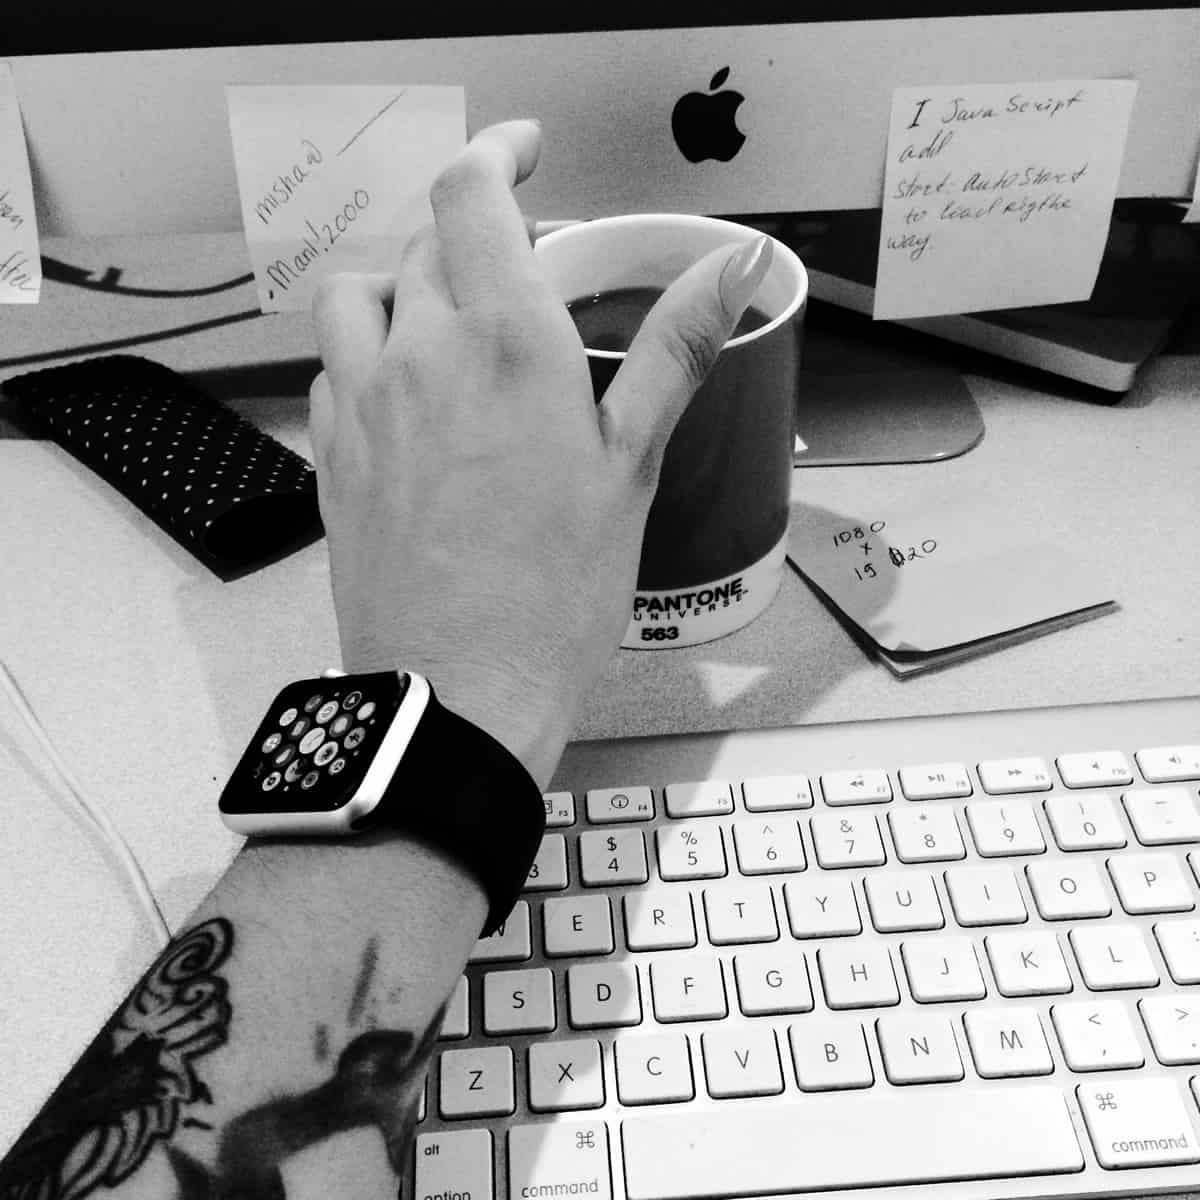 A black and white photo of a mobile app designer reaching for a coffee cup near an iMac monitor while wearing an Apple Watch.